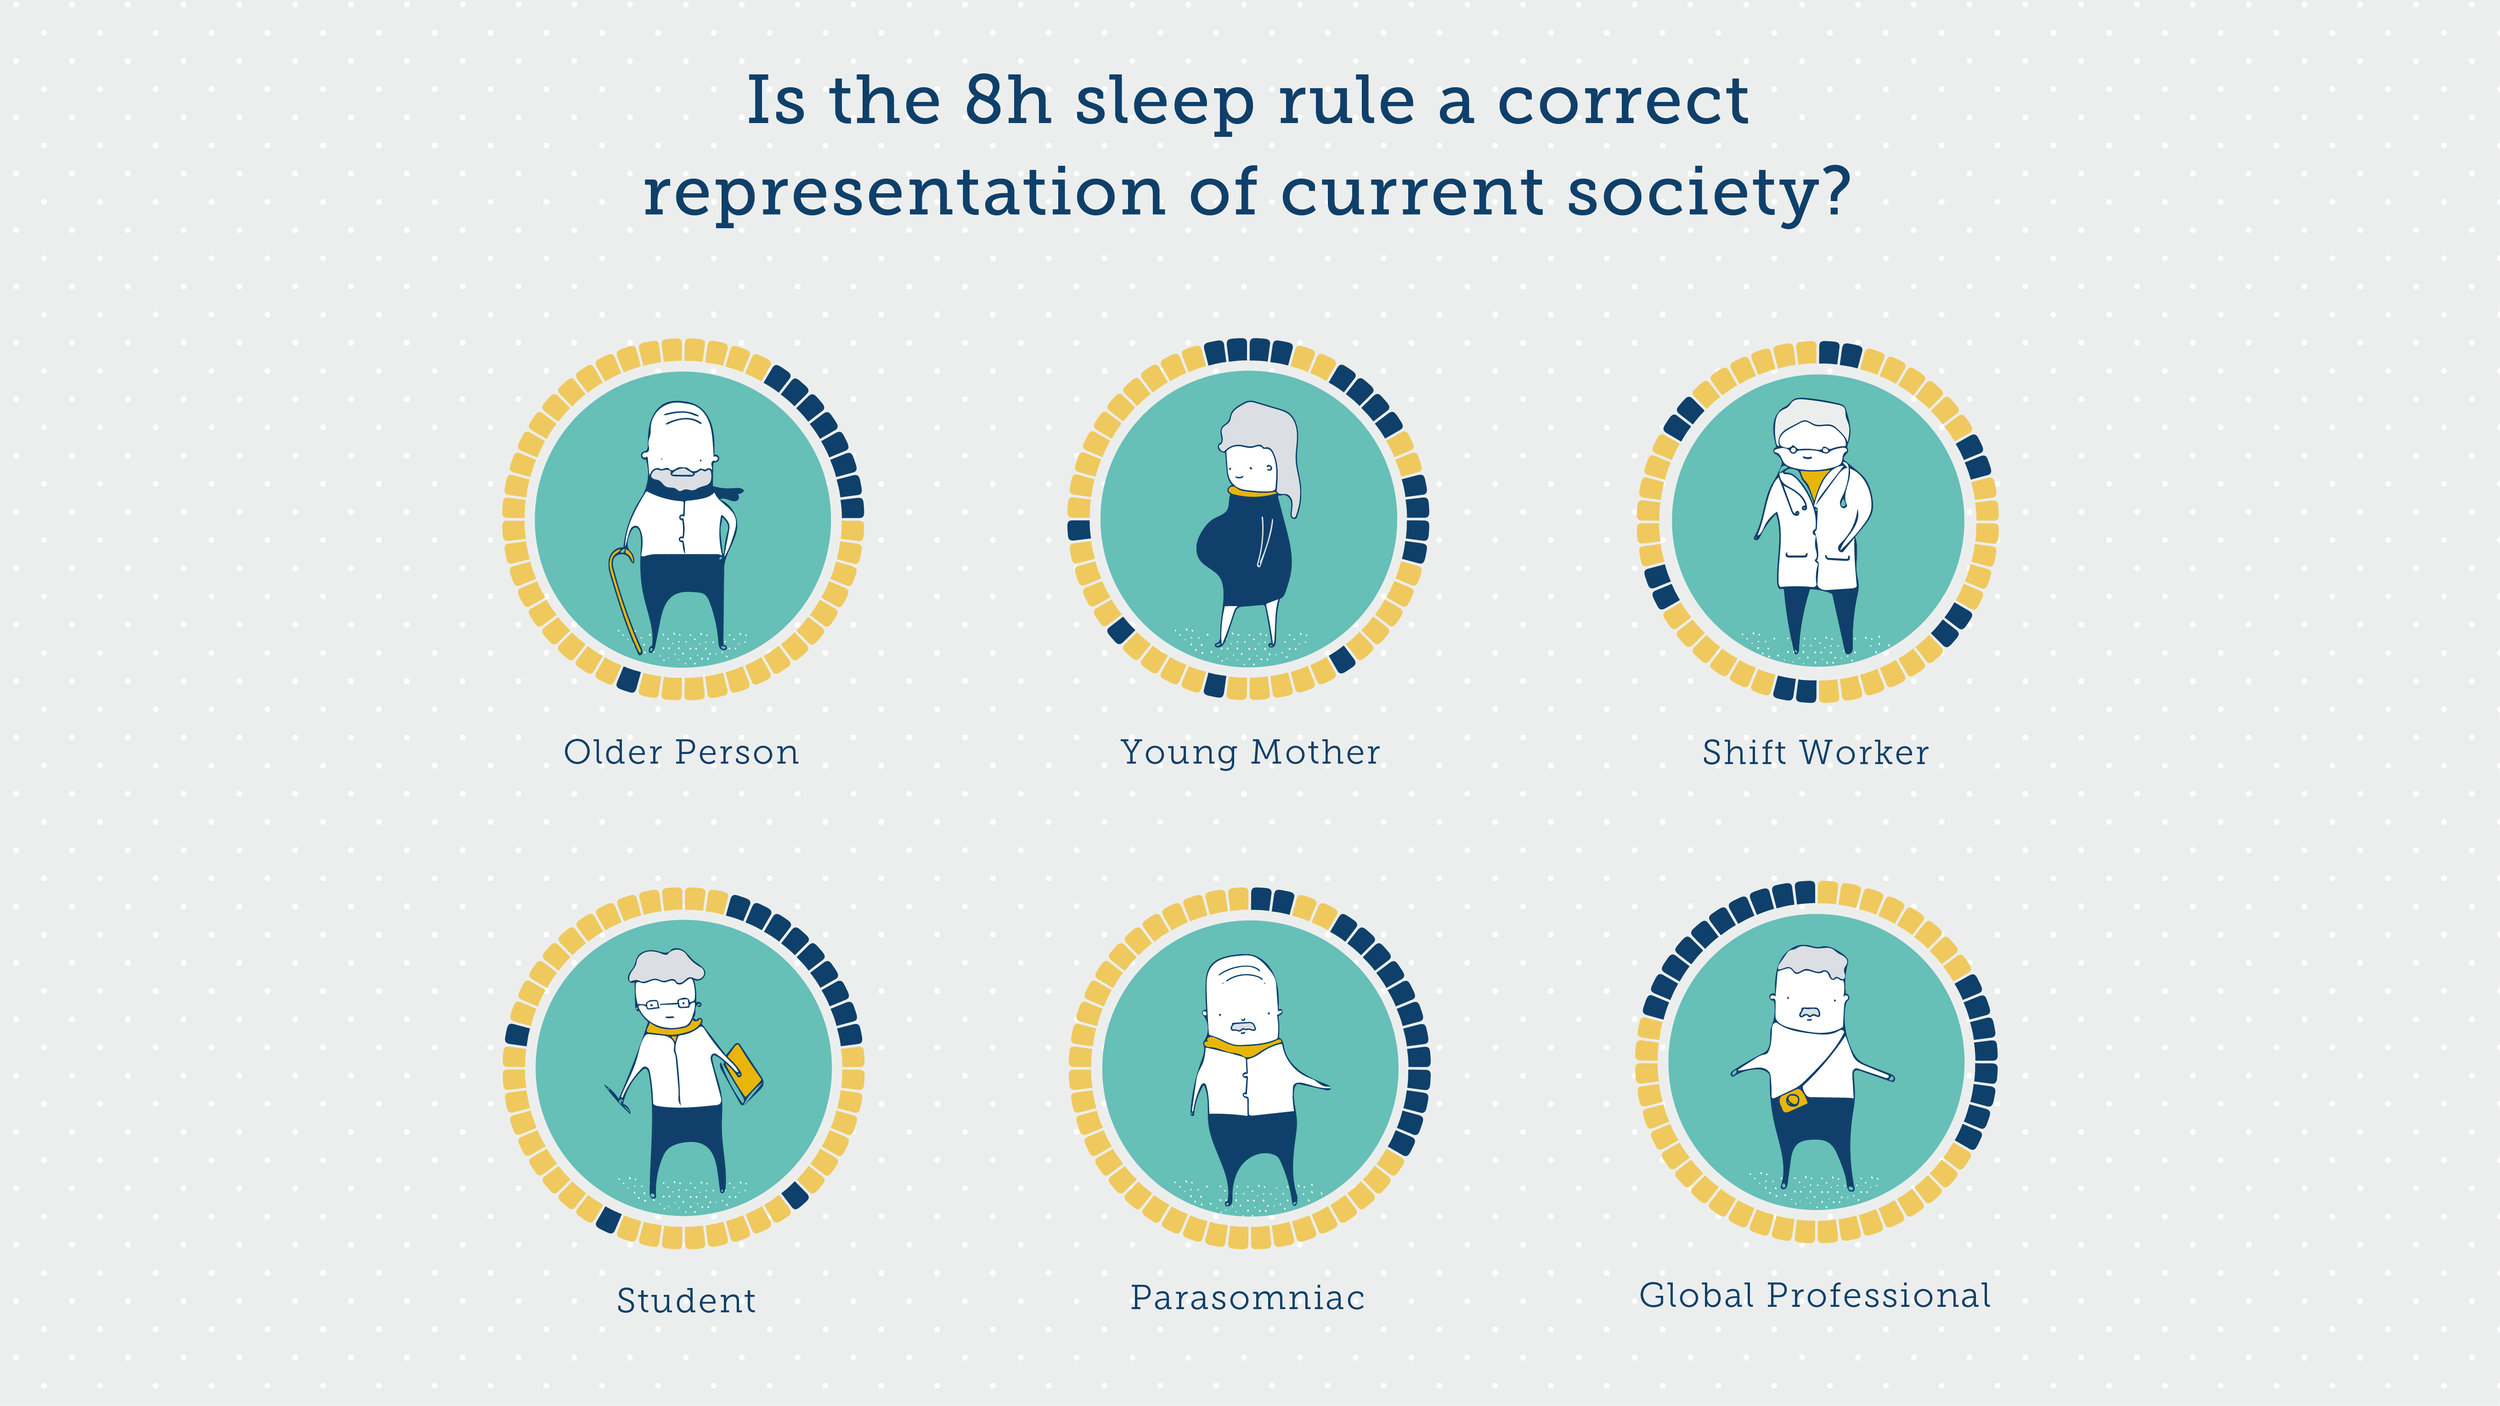 8 hour sleep rule. The project started when we questioned this 8-hour sleep rule. And we found that each person has their own individual patterns